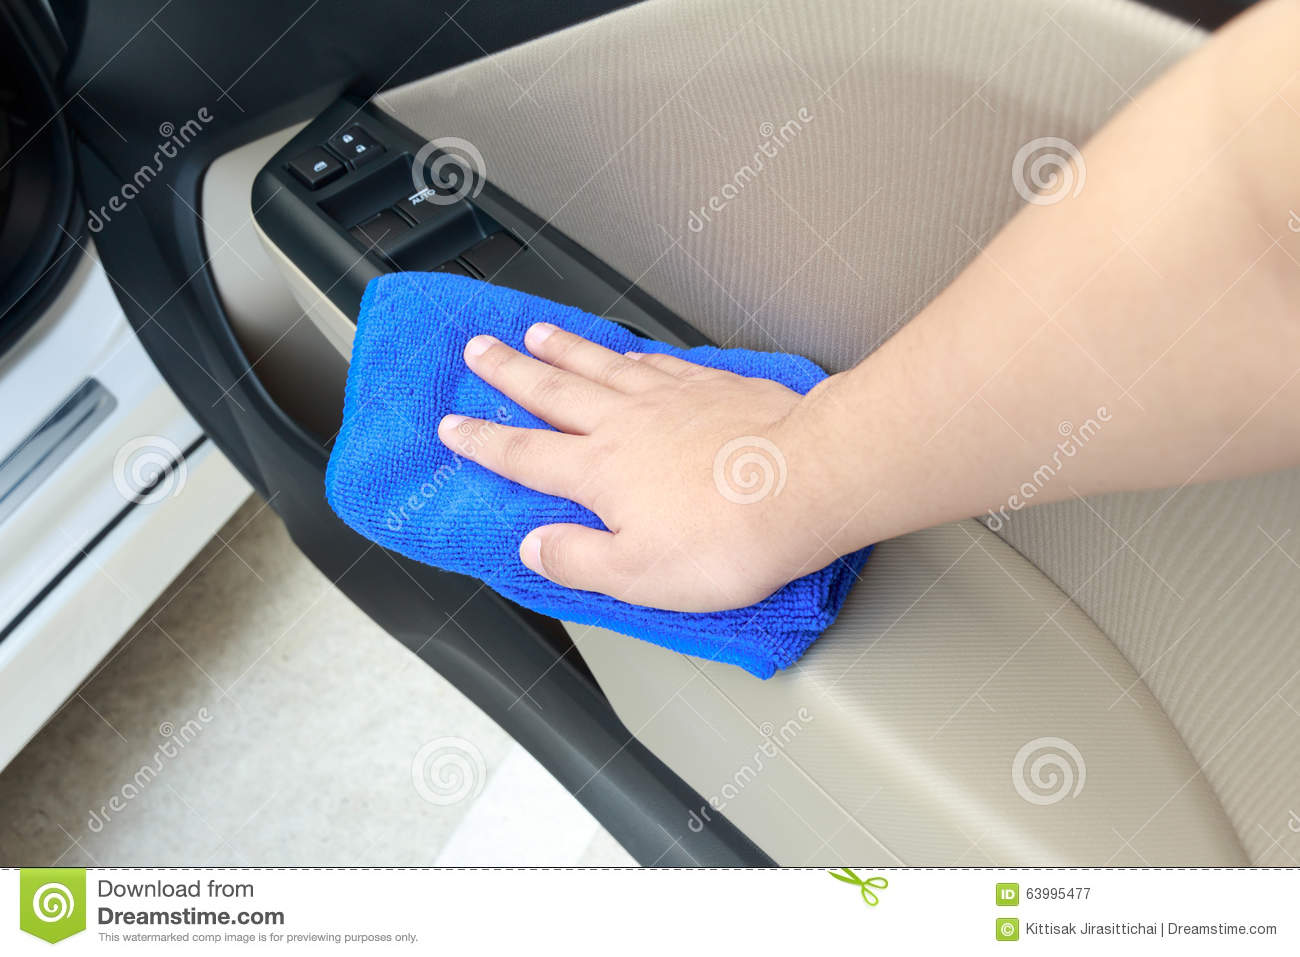 hand cleaning interior car door panel with microfiber cloth stock photo image 63995477. Black Bedroom Furniture Sets. Home Design Ideas